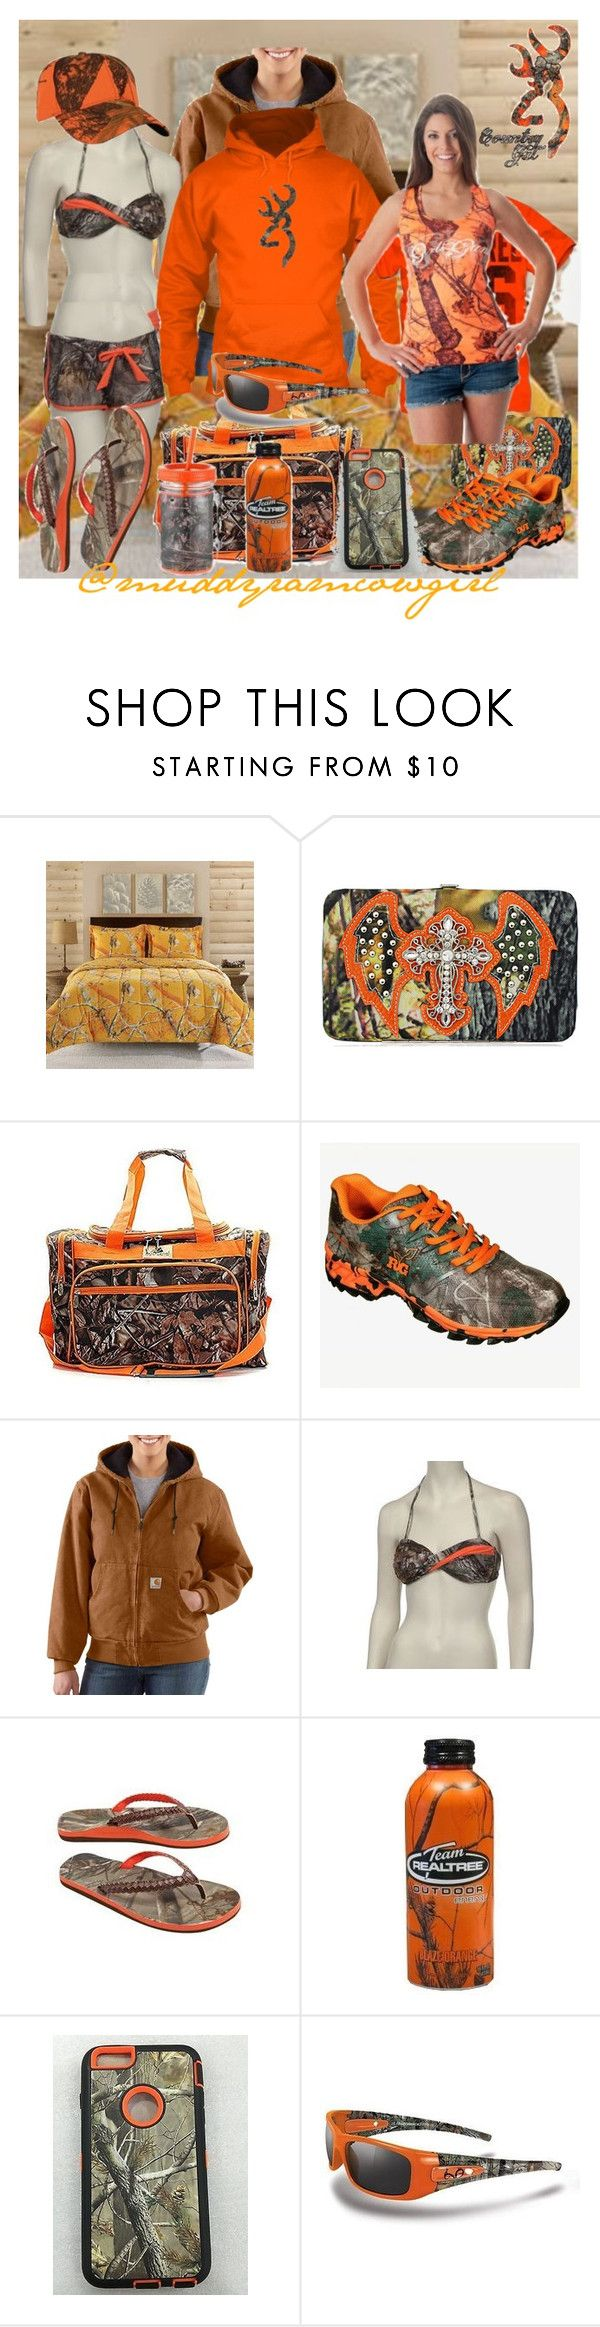 """Orange Realtree"" by muddyramcowgirl ❤ liked on Polyvore featuring Realtree and INC International Concepts"